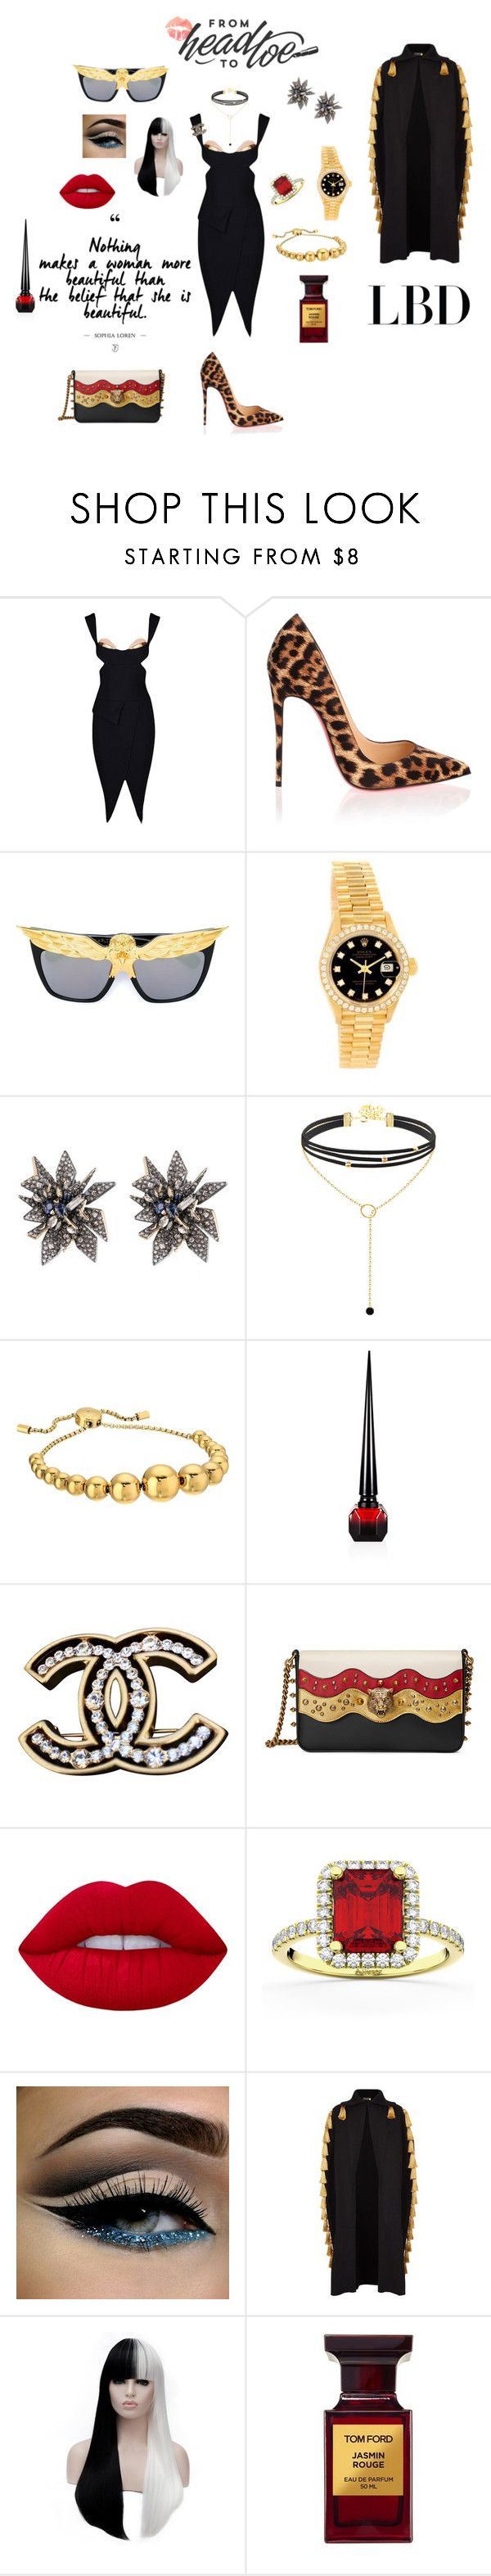 LBD Contest by the-jewelry-trunk on Polyvore featuring Burberry, Christian Louboutin, Gucci, Rolex, Allurez, Chanel, Alexis Bittar, Michael Kors, Anna-Karin Karlsson and Lime Crime